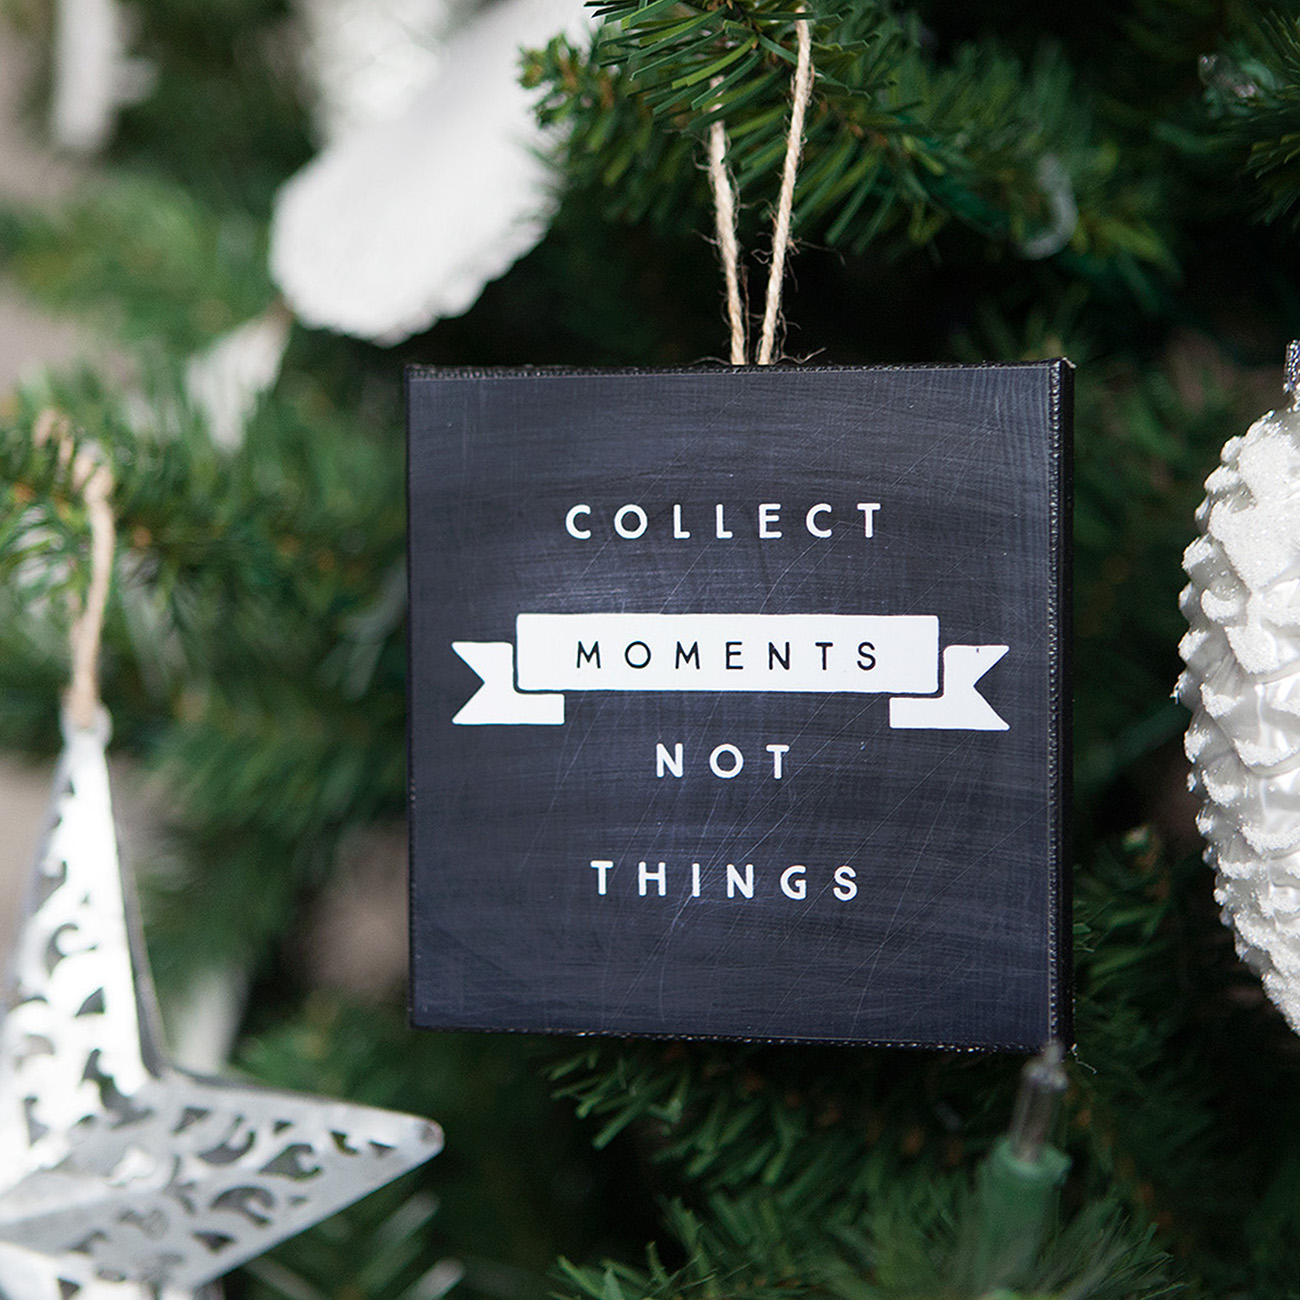 Holidays: Make mini canvas ornaments as a beautiful reminder to focus on the little things this holidays season! Such a sweet idea for Christmas. For Bake Craft Sew from Simple as That.